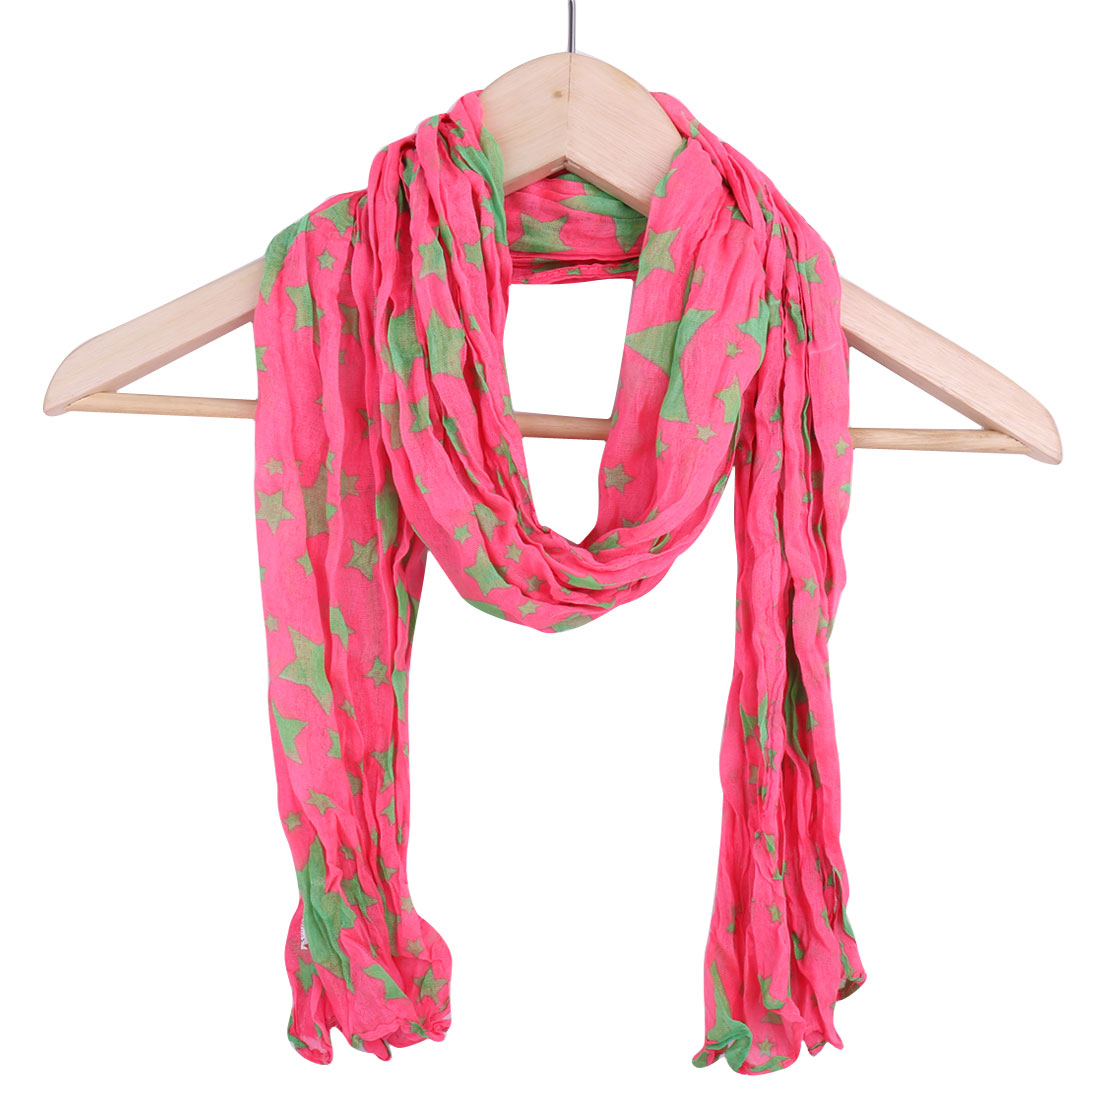 Women Stars Prints Classic Soft Scarf Hot Pink Light Green